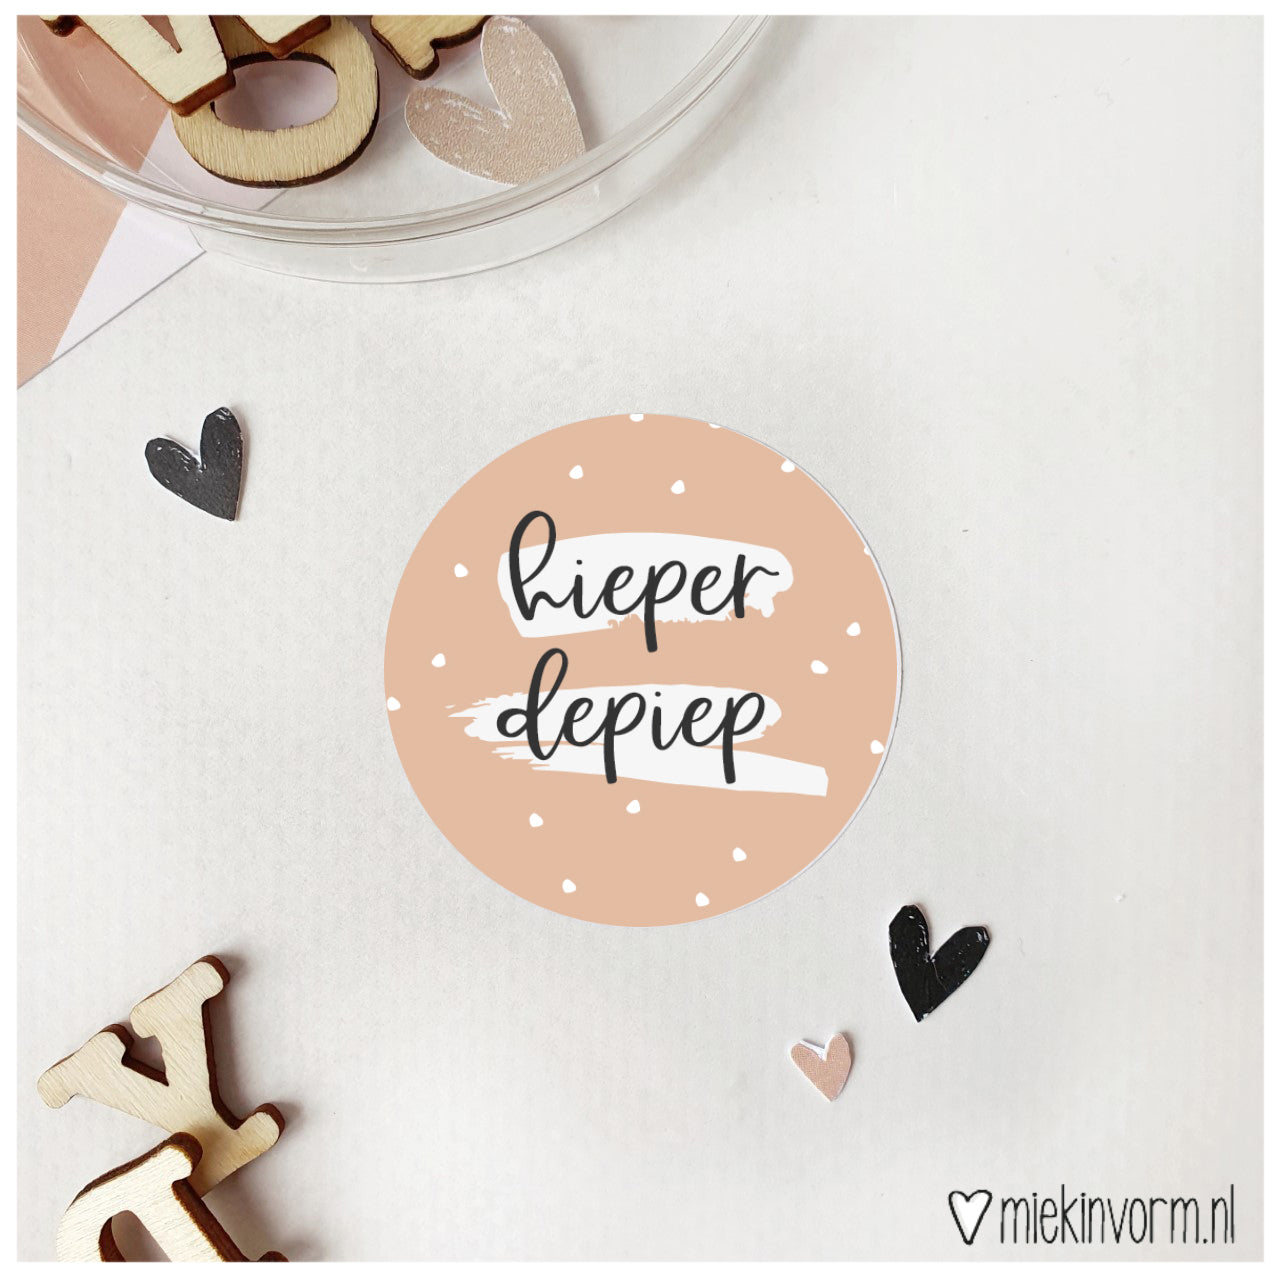 Sticker | Hieperdepiep